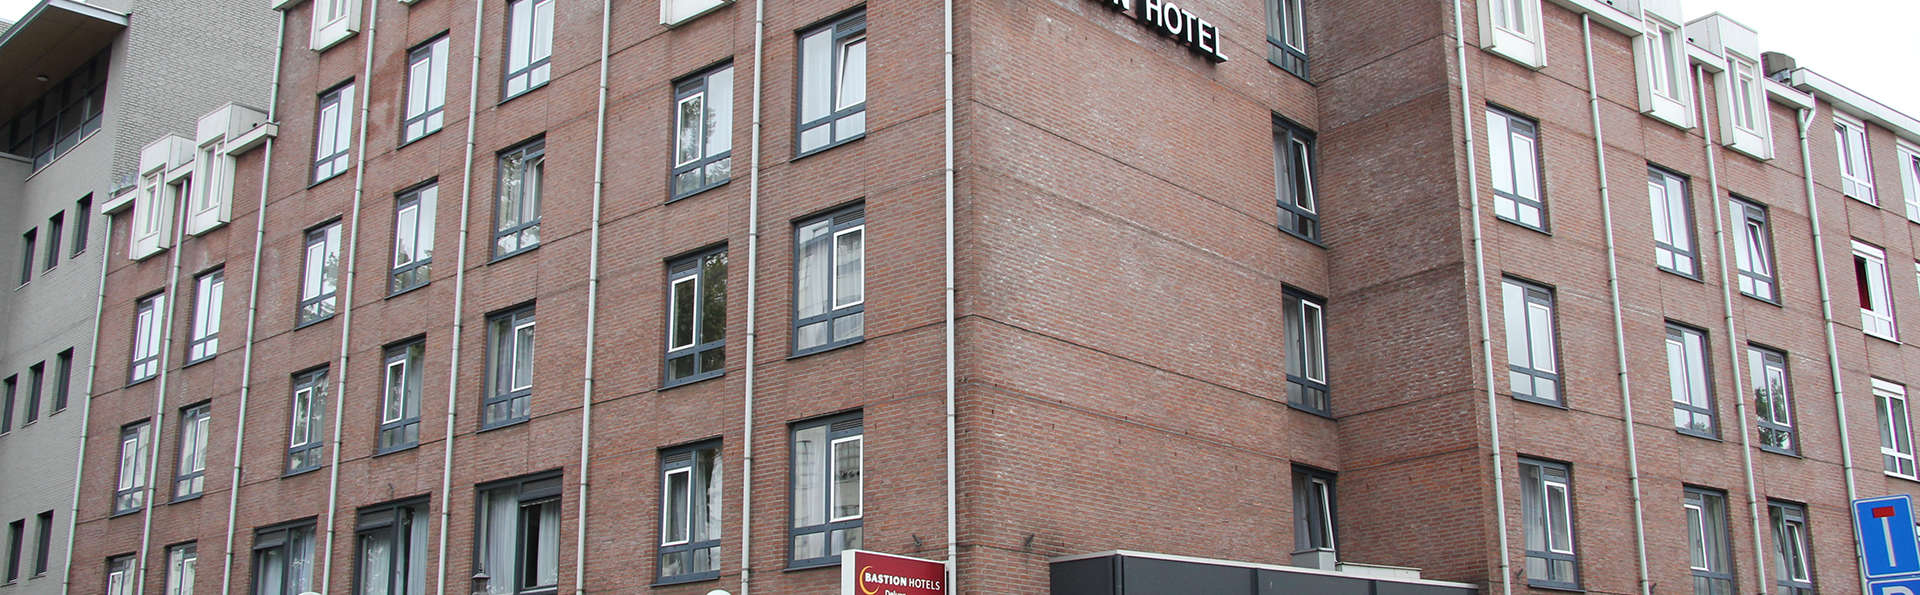 Bastion Hotel Maastricht - Centrum - Edit_Front.jpg